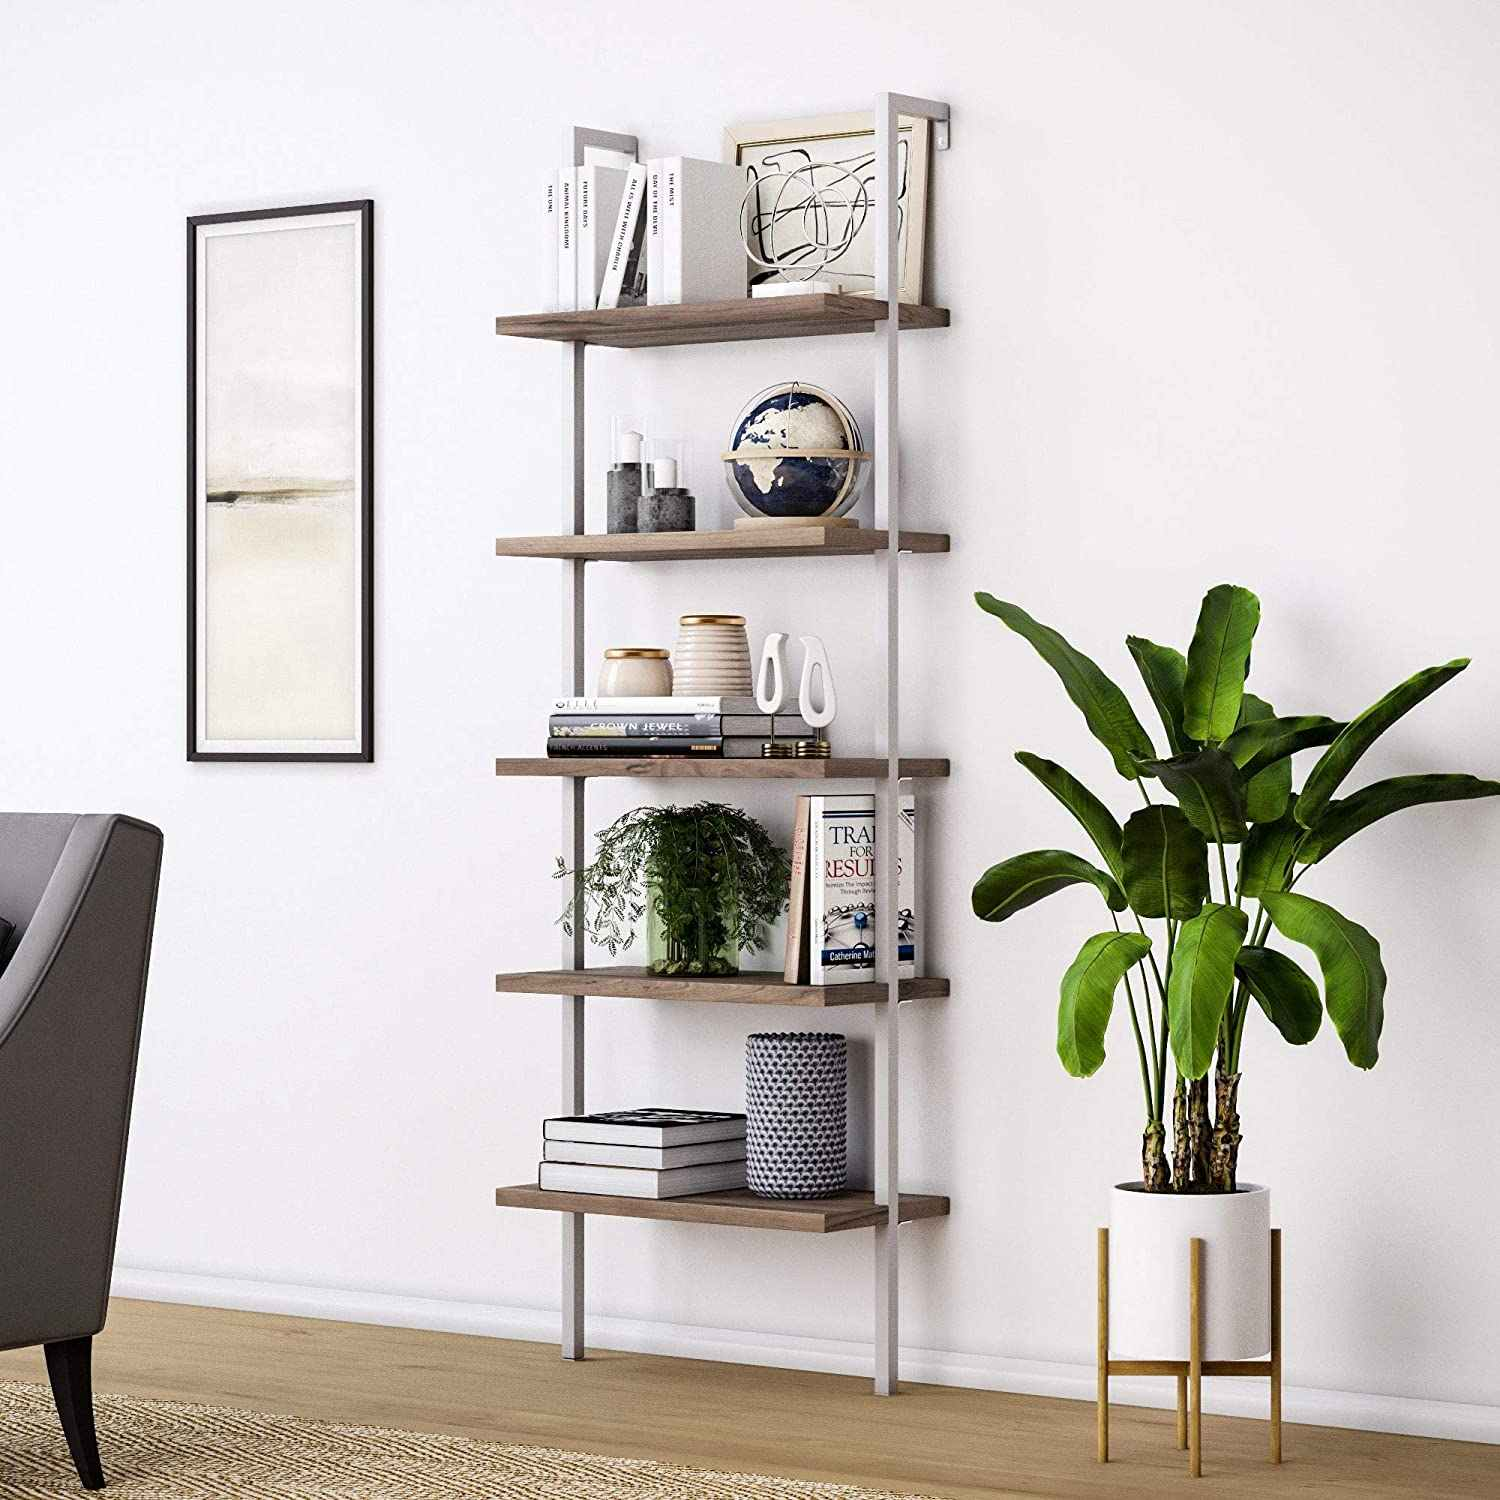 Us Warehouse 5 Shelf Wood Ladder Bookcase With Metal Frame Industrial 5 Tier Modern Ladder Shelf Wood Shelves Walnut Decorative Shelves Aliexpress